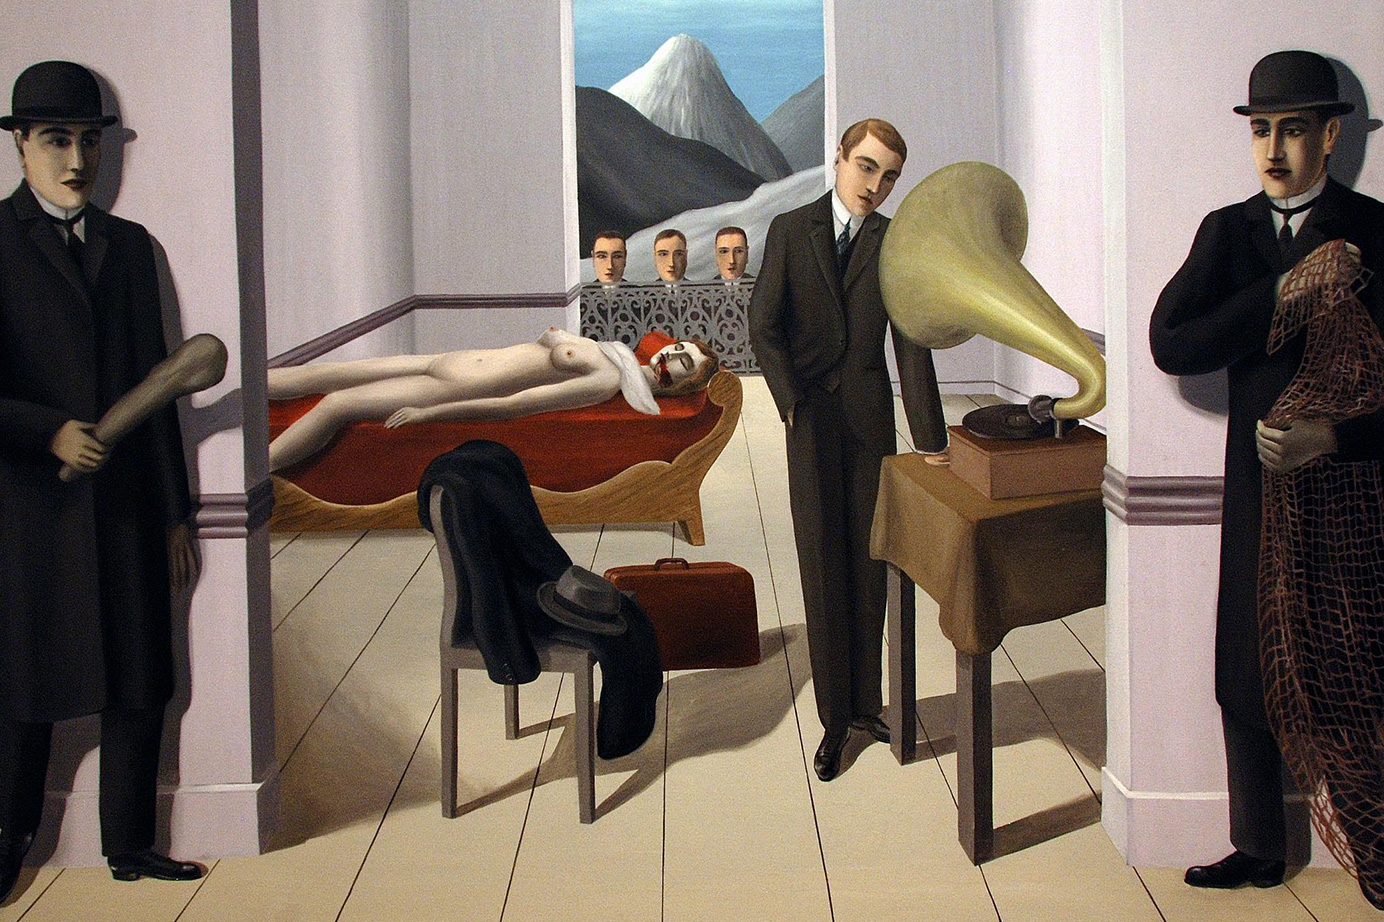 L'Assassin menacé by René Magritte, 1927. Museum of Modern Art, New York.